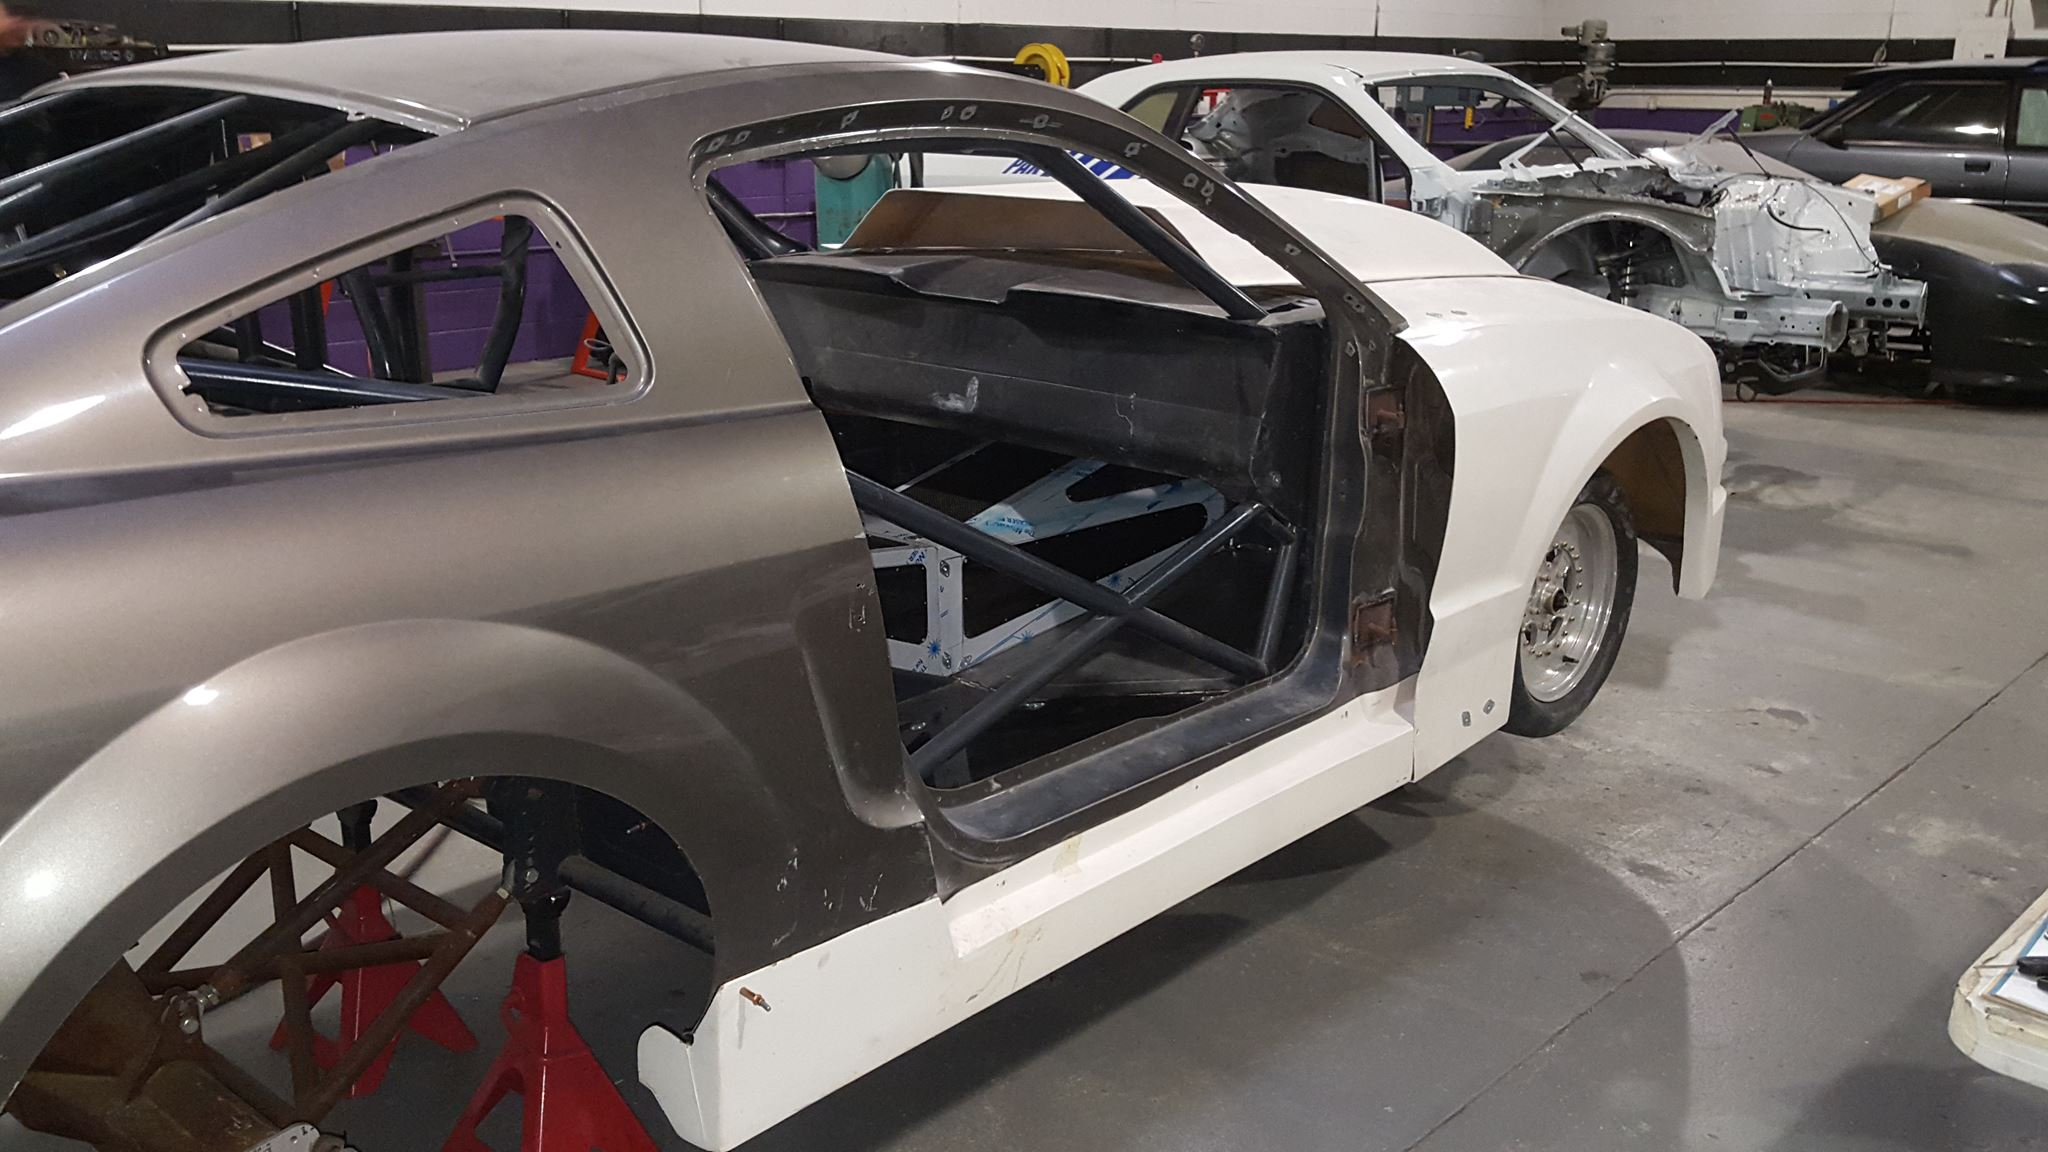 street outlaws boostedgt 39 s building a new car epic speed. Black Bedroom Furniture Sets. Home Design Ideas